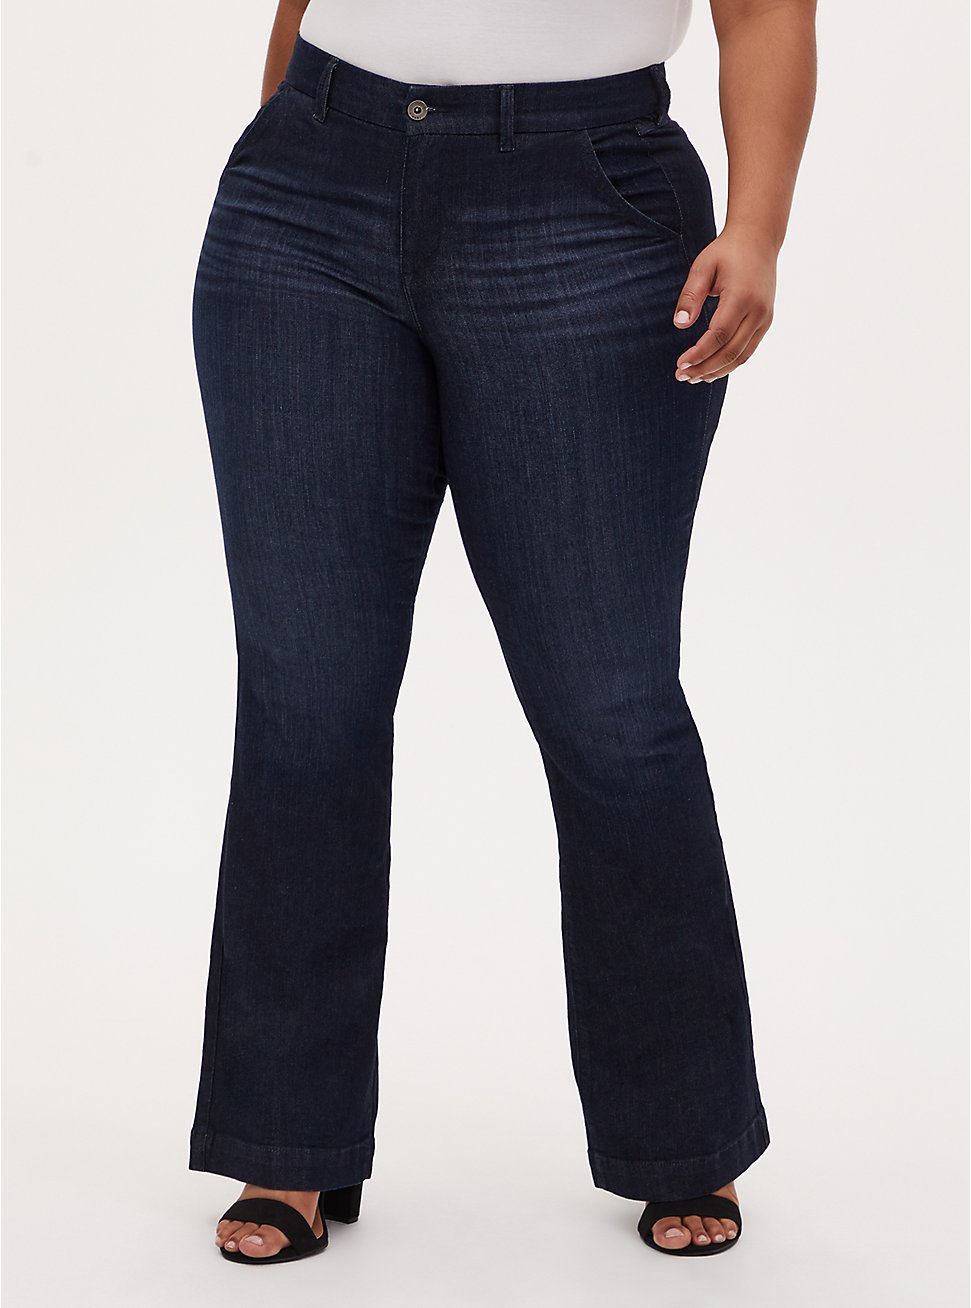 Mid Rise Flare Jean - Vintage Stretch Eco Dark Wash , LOST IN SPACE, hi-res